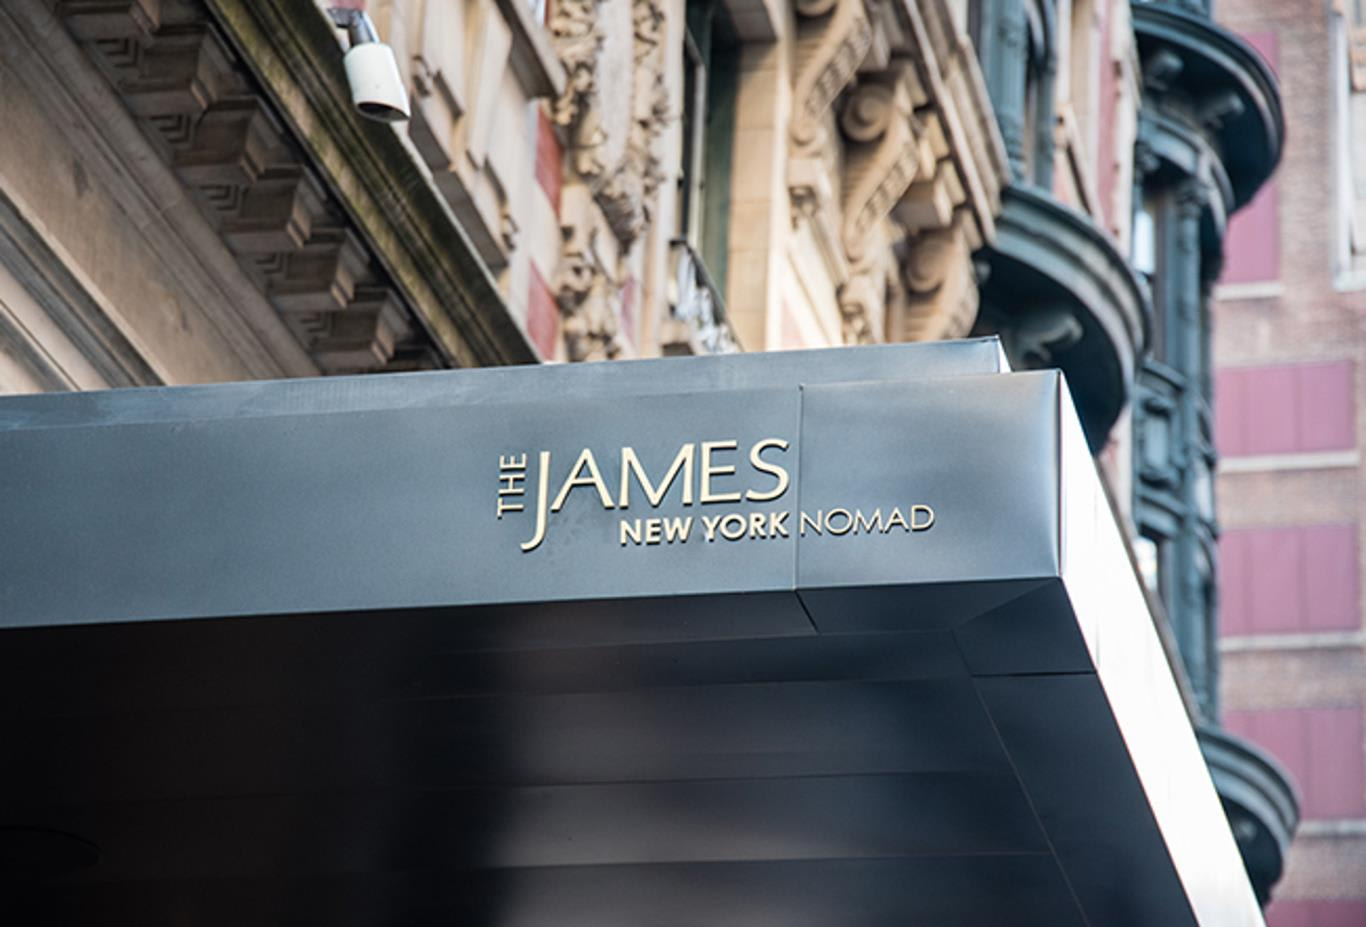 The James New York NoMad